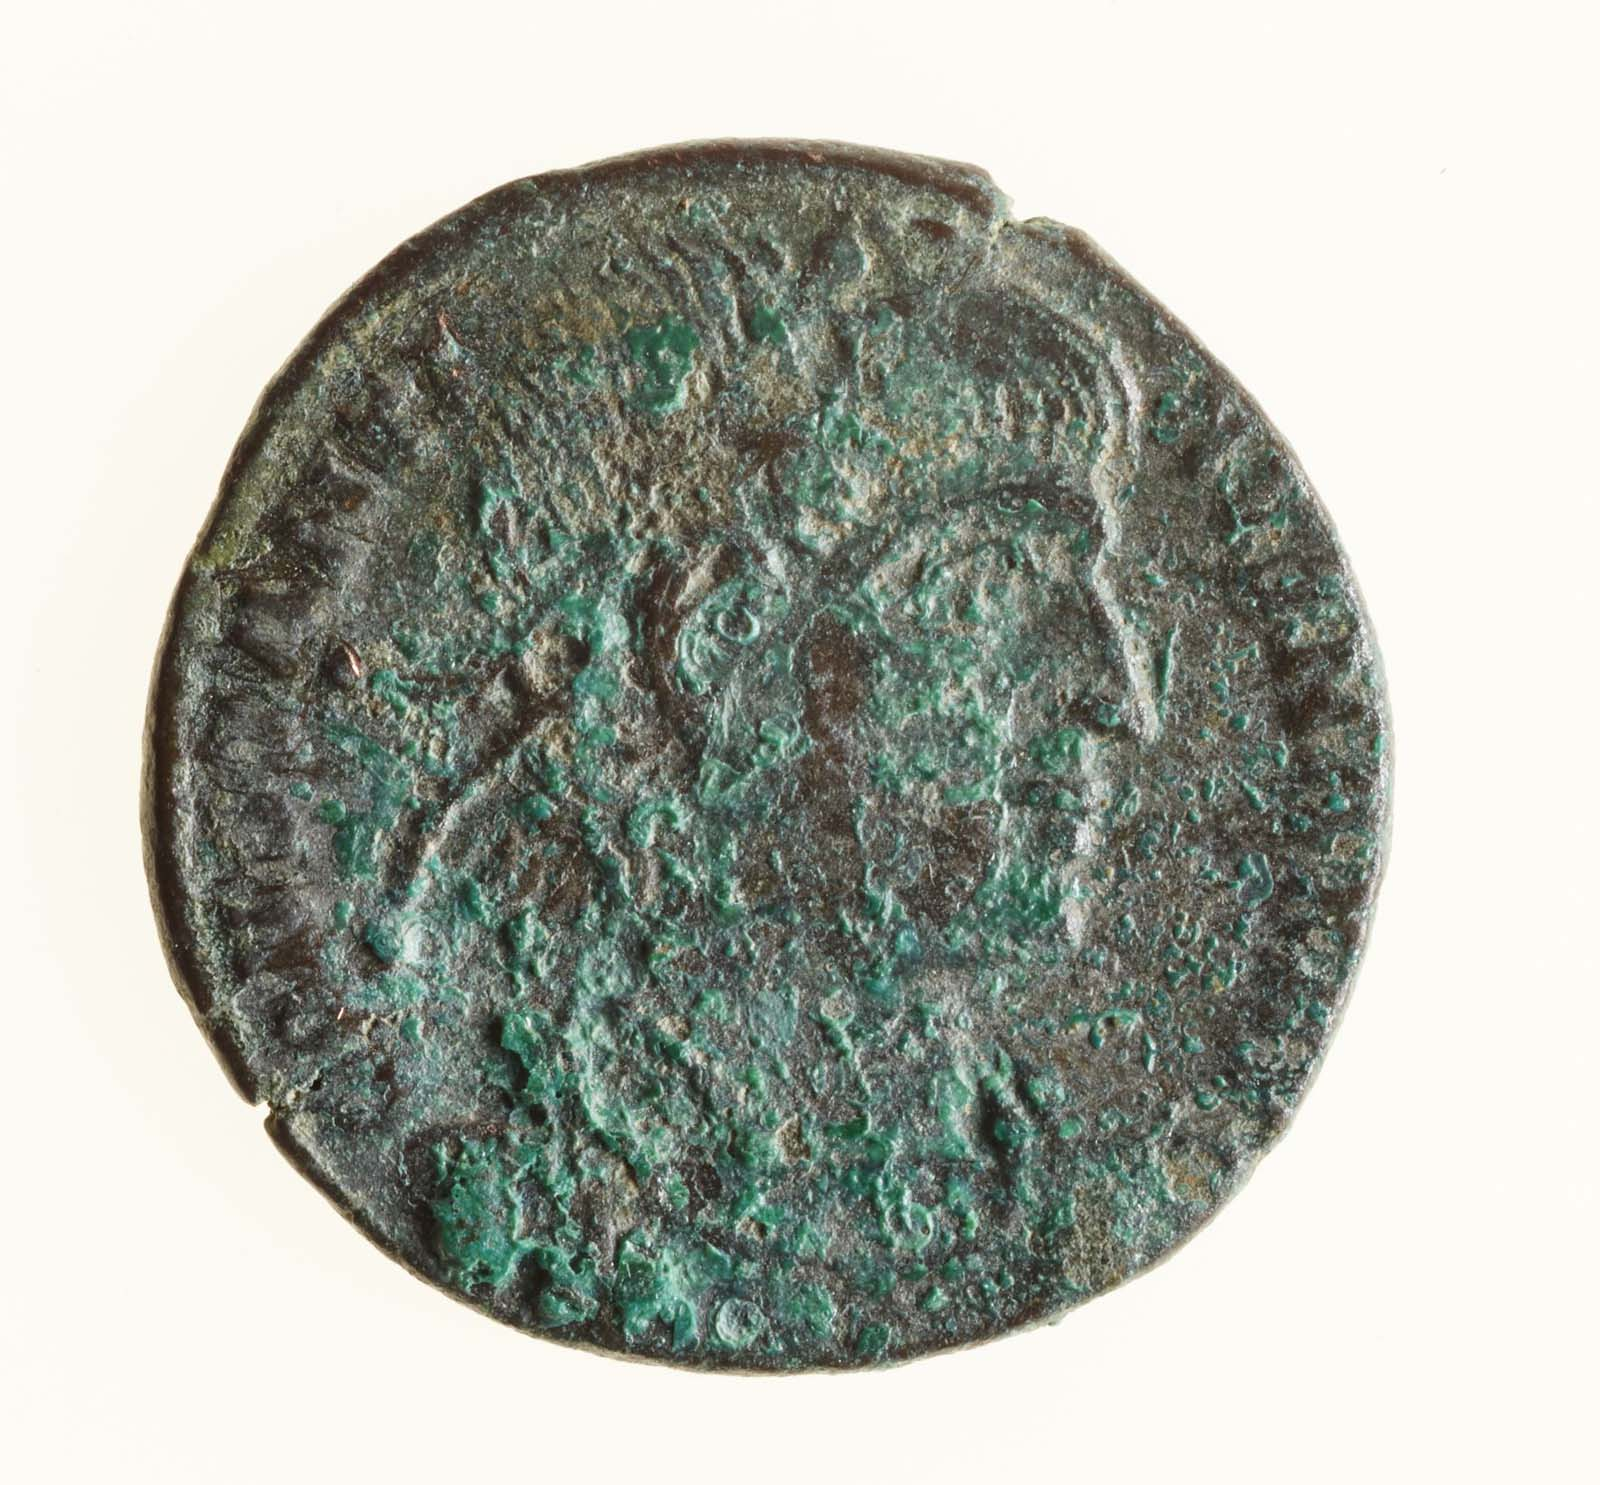 photo of a coin with roman head and verdigris